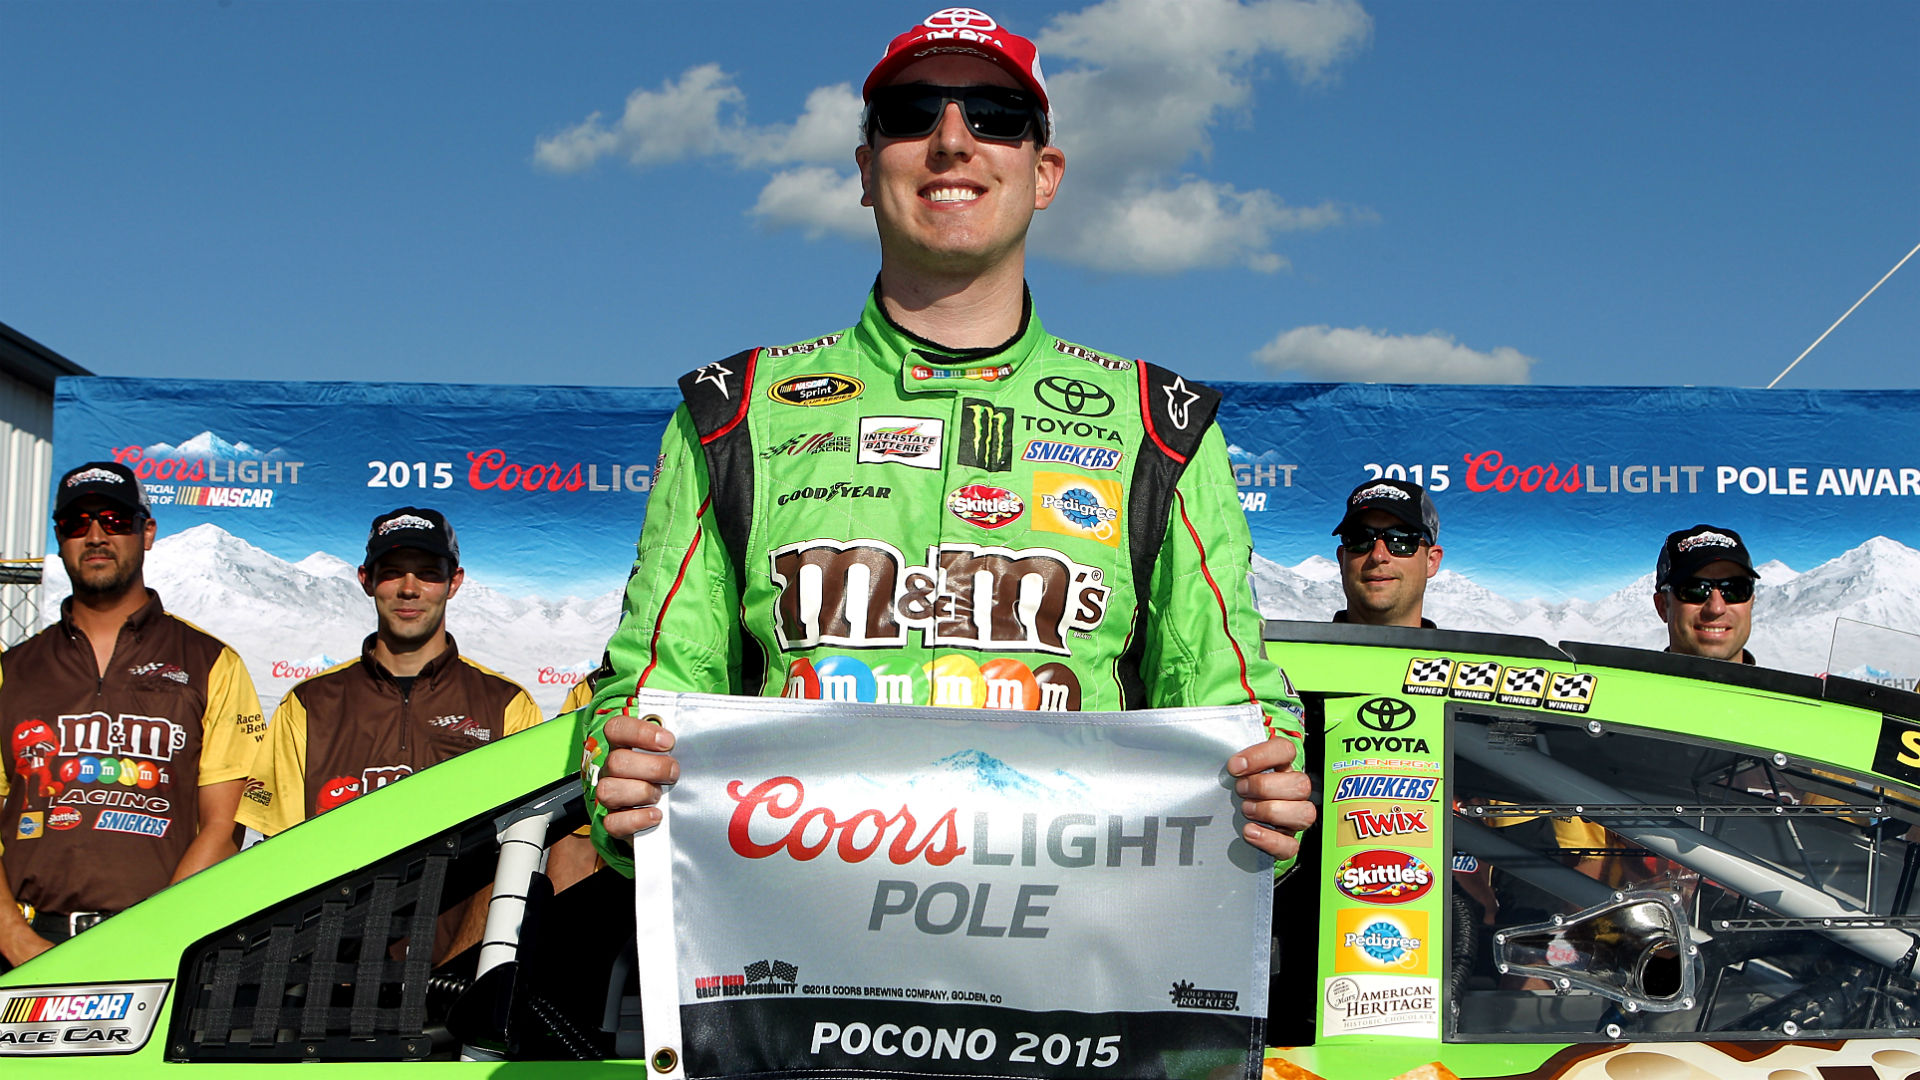 Sprint Cup qualifying: Kyle Busch continues torrid streak with Pocono pole